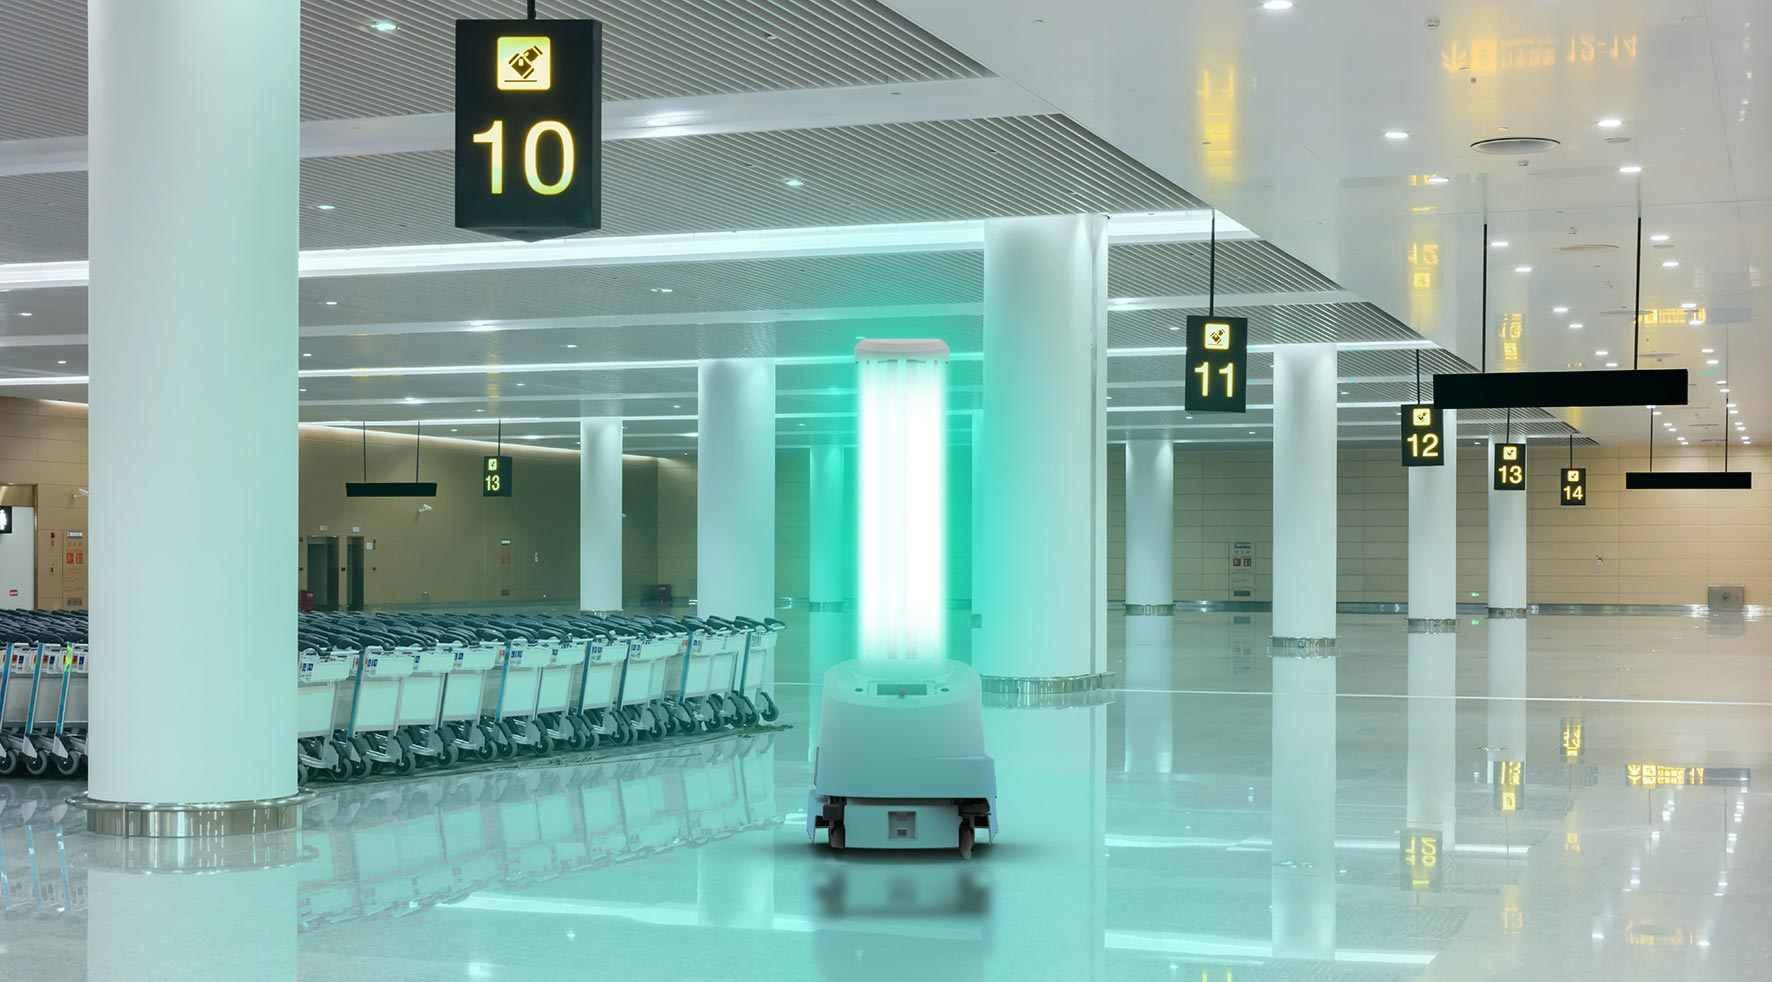 ARC UVD Robot in Airport Setting